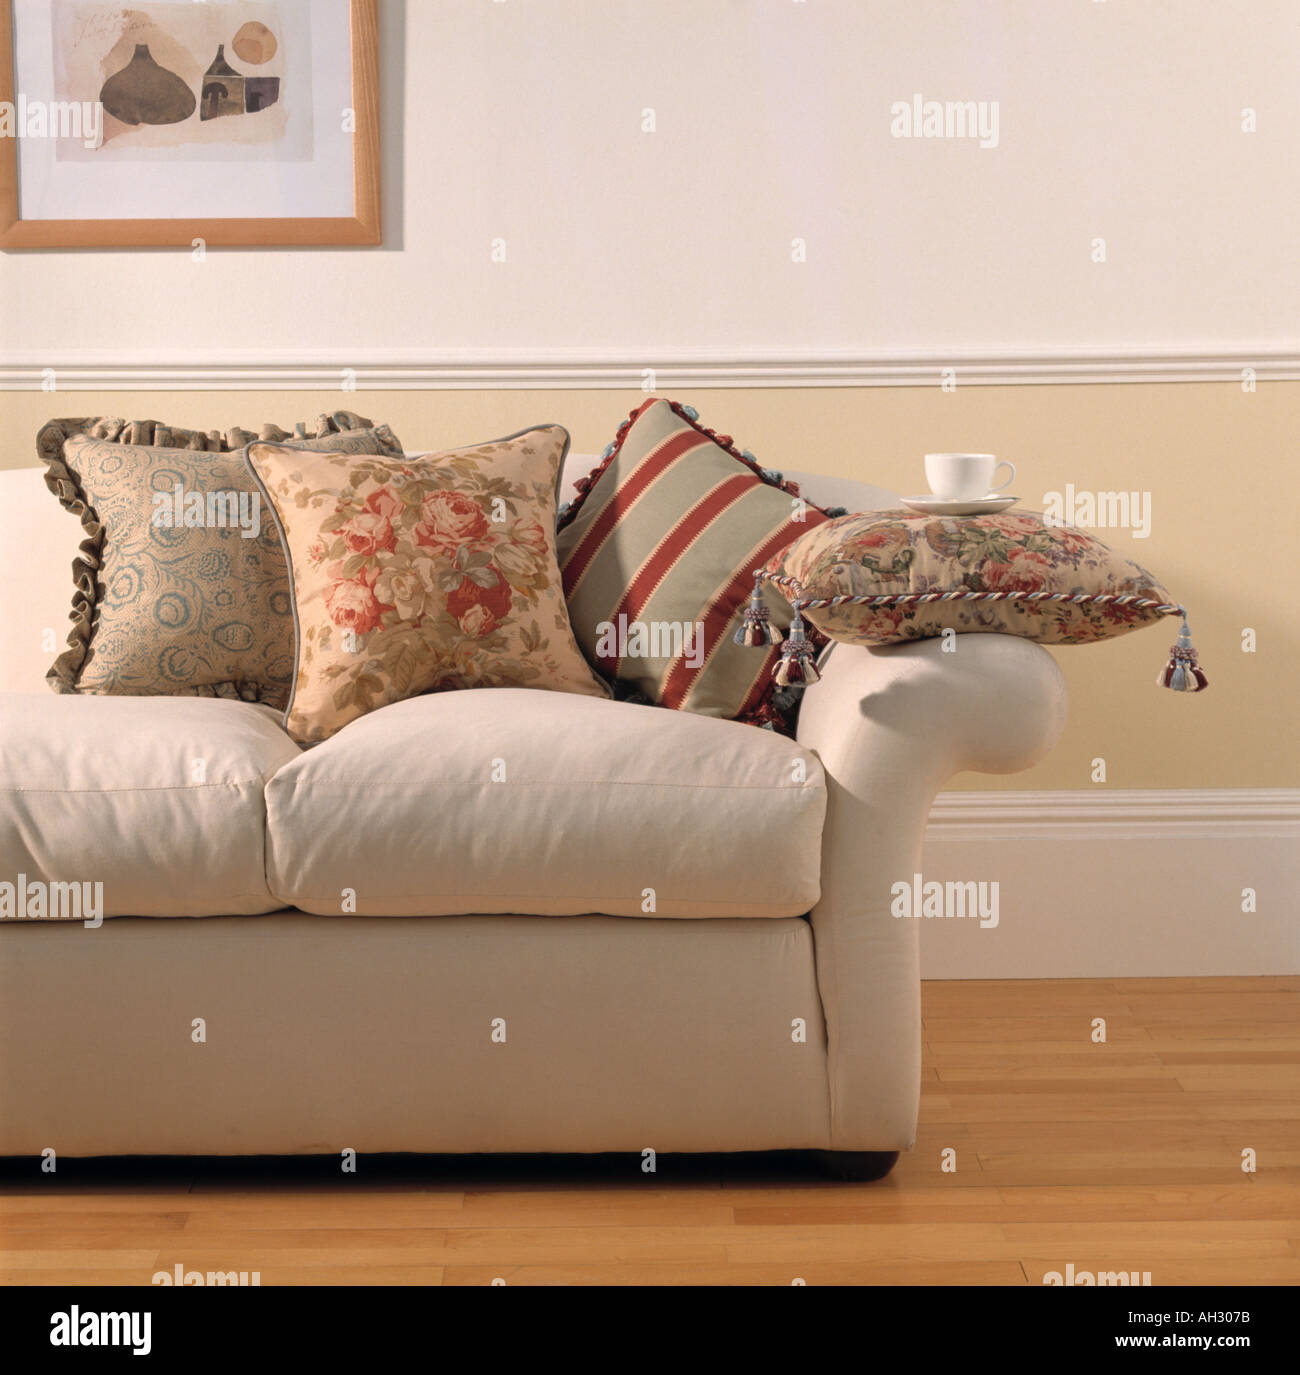 Living Room Decorating Ideas With Dado Rail dado rail stock photos & dado rail stock images - alamy